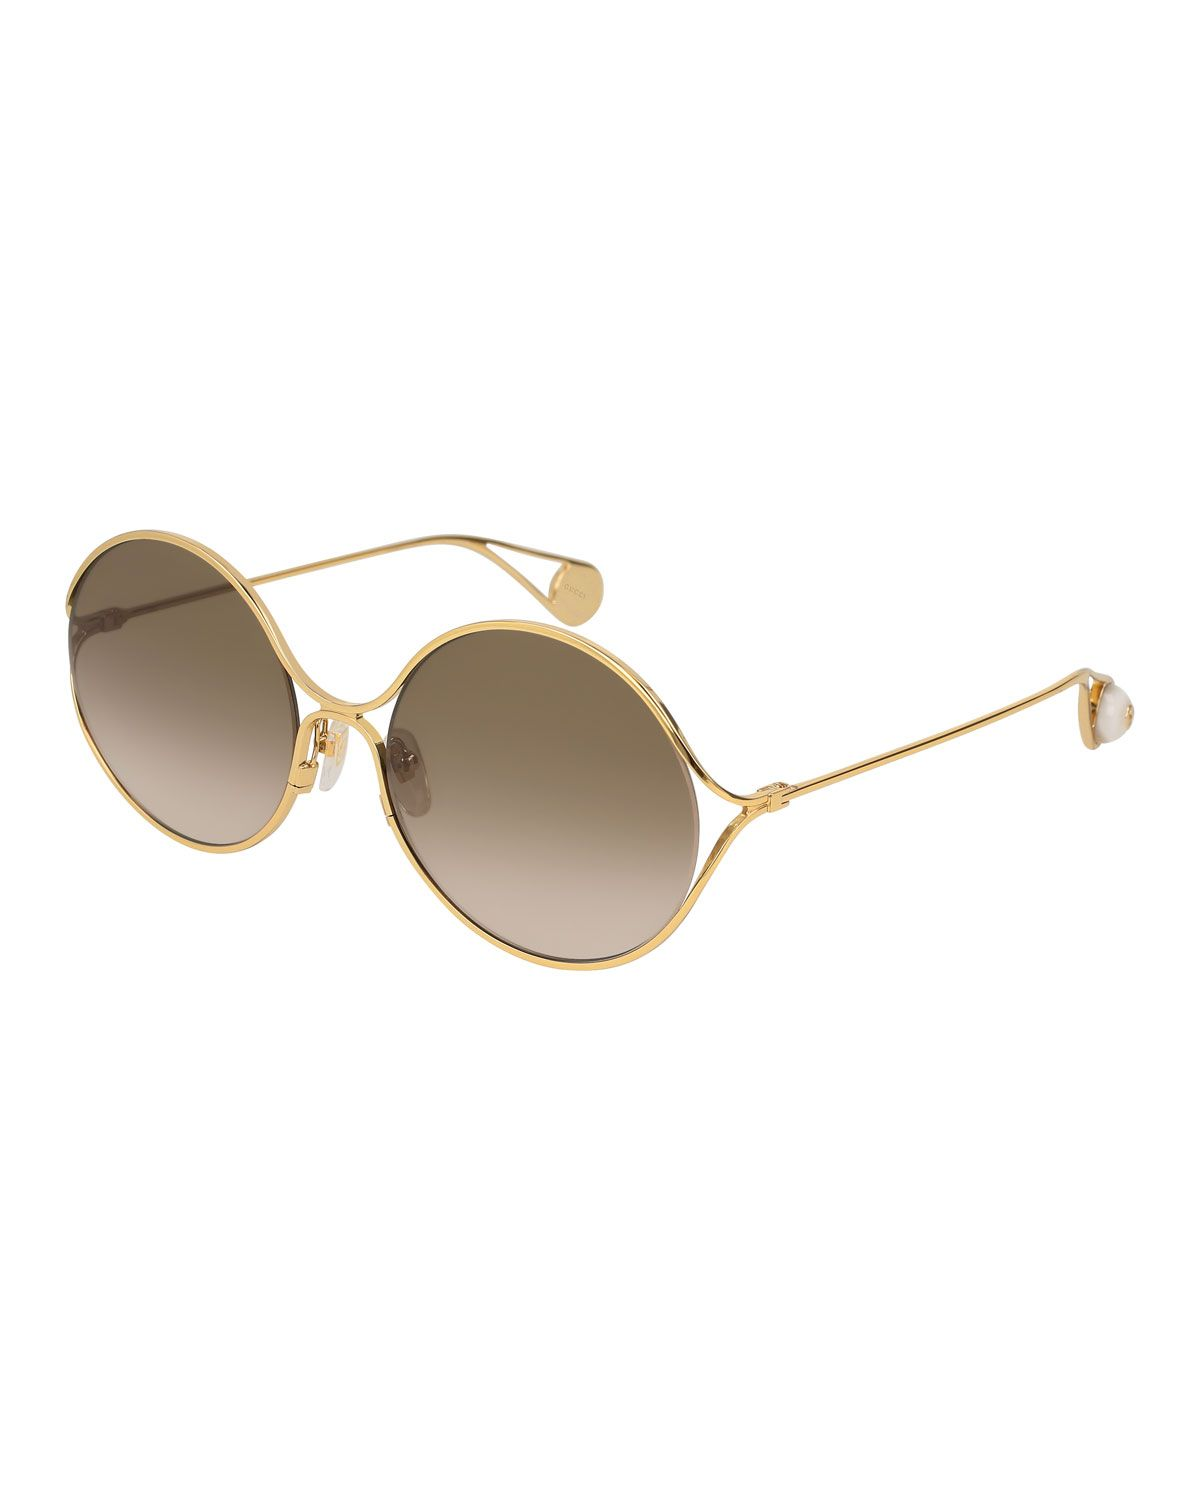 4bae3692a4 Round Forked Metal Sunglasses Gold Brown